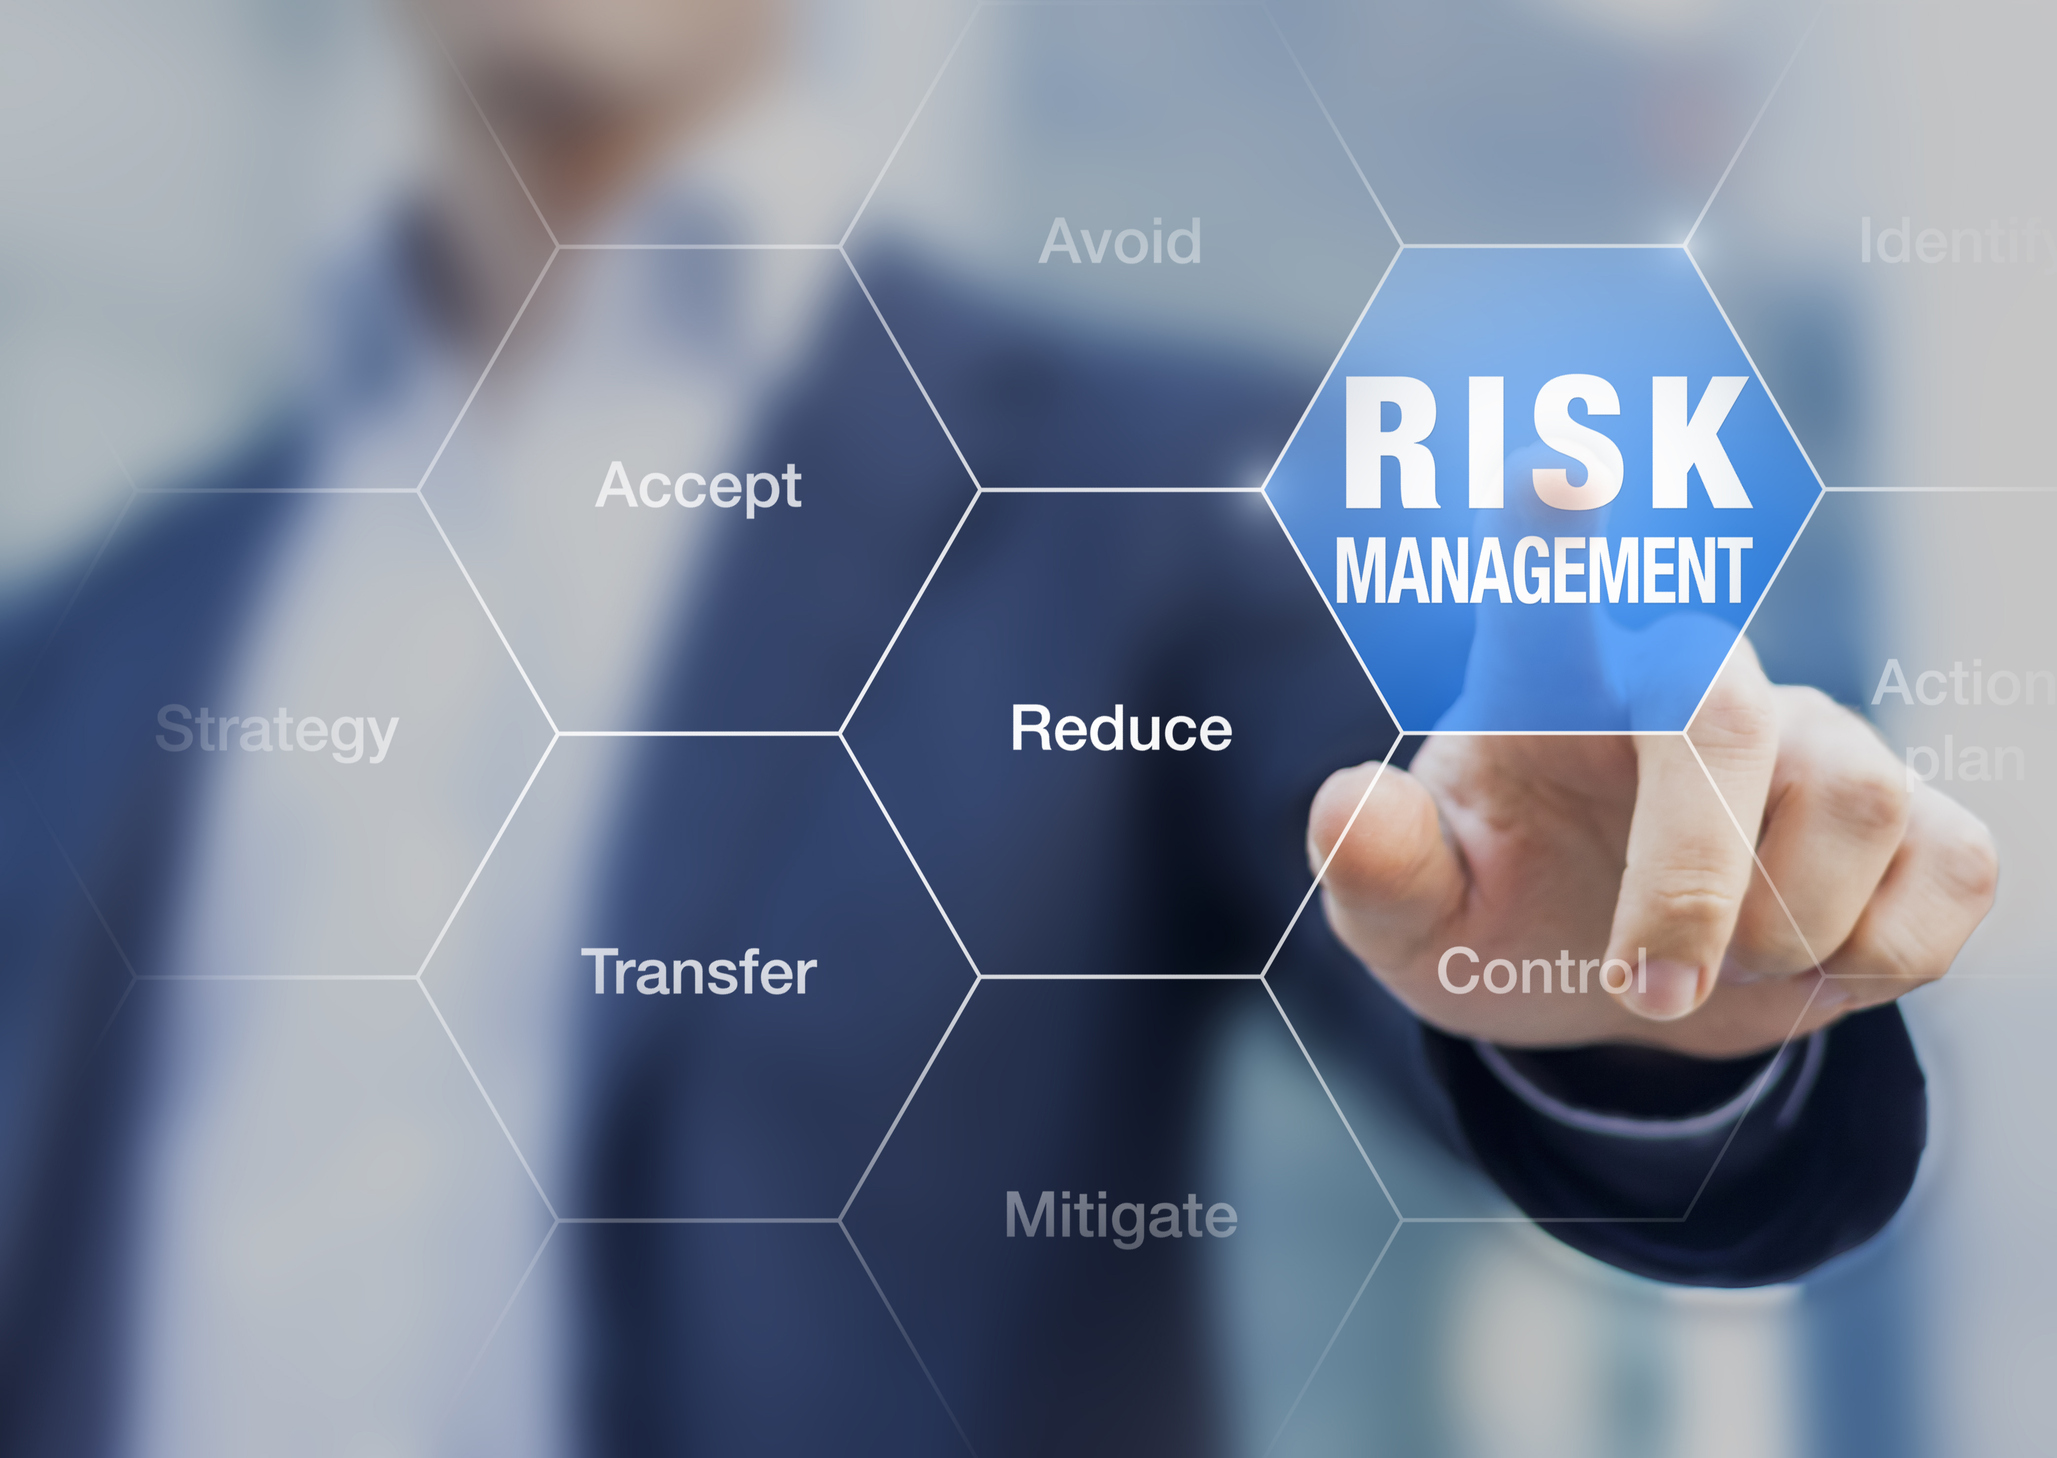 image of business owner dealing with risk management